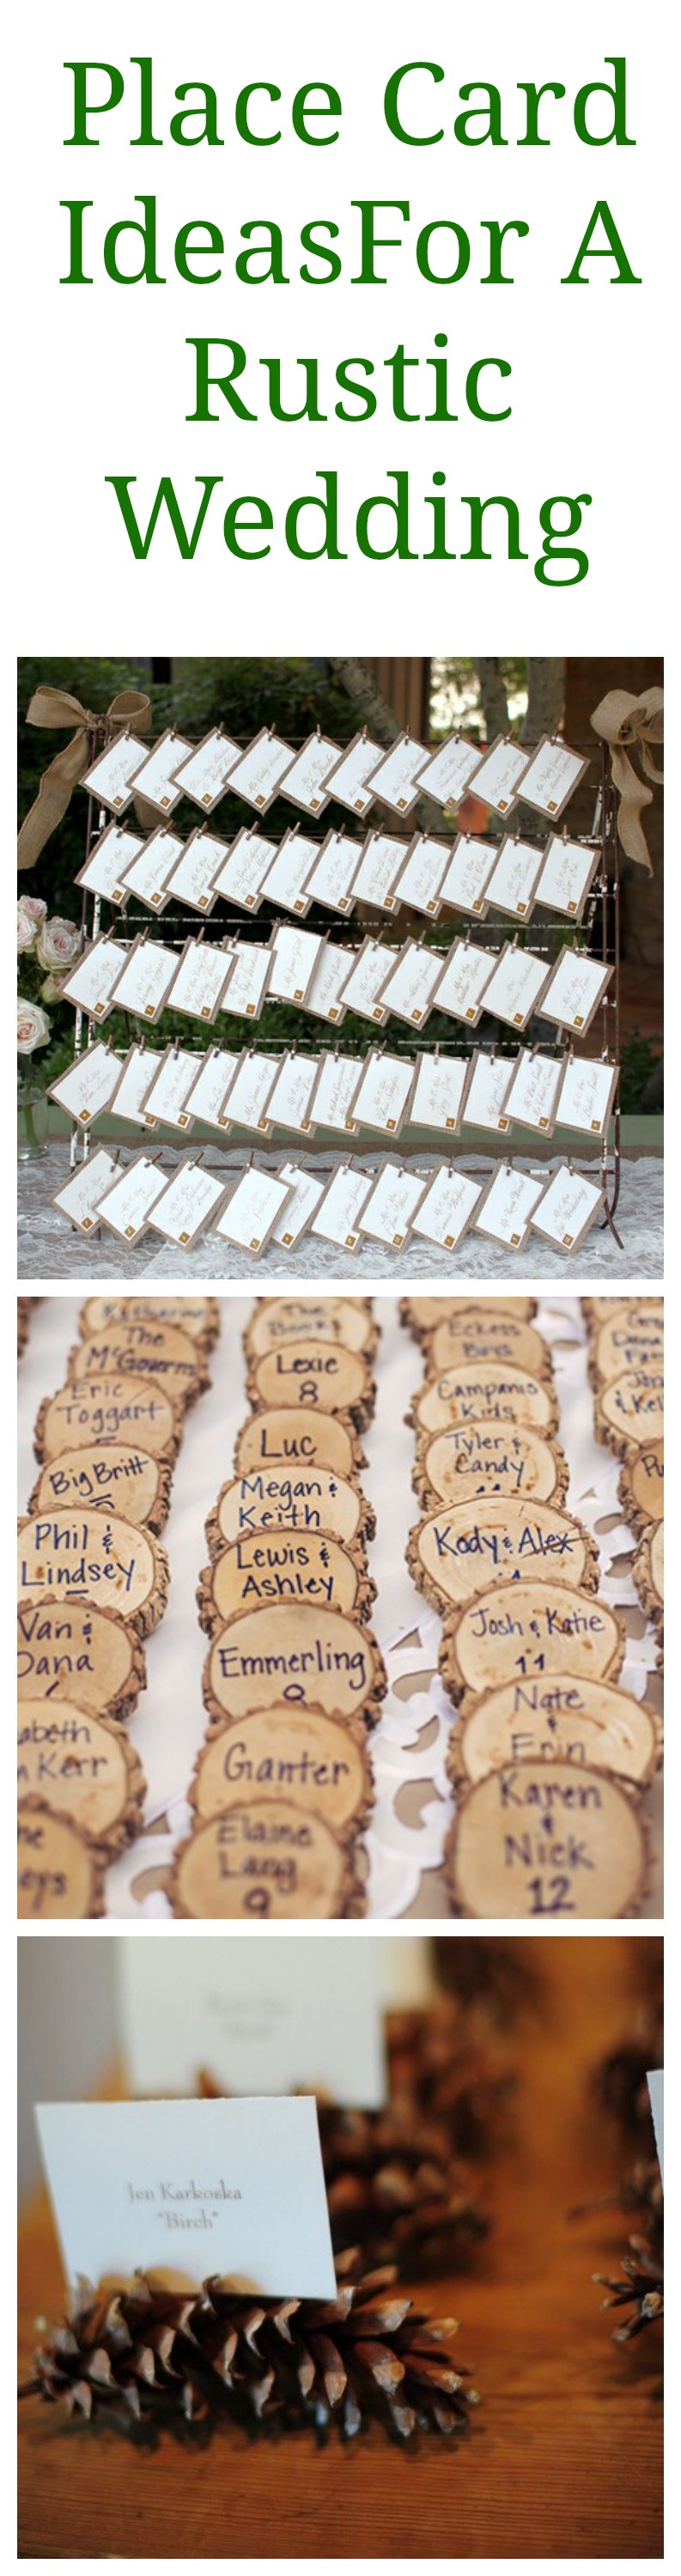 Rustic wedding place card display ideas rustic wedding chic Unique place card ideas